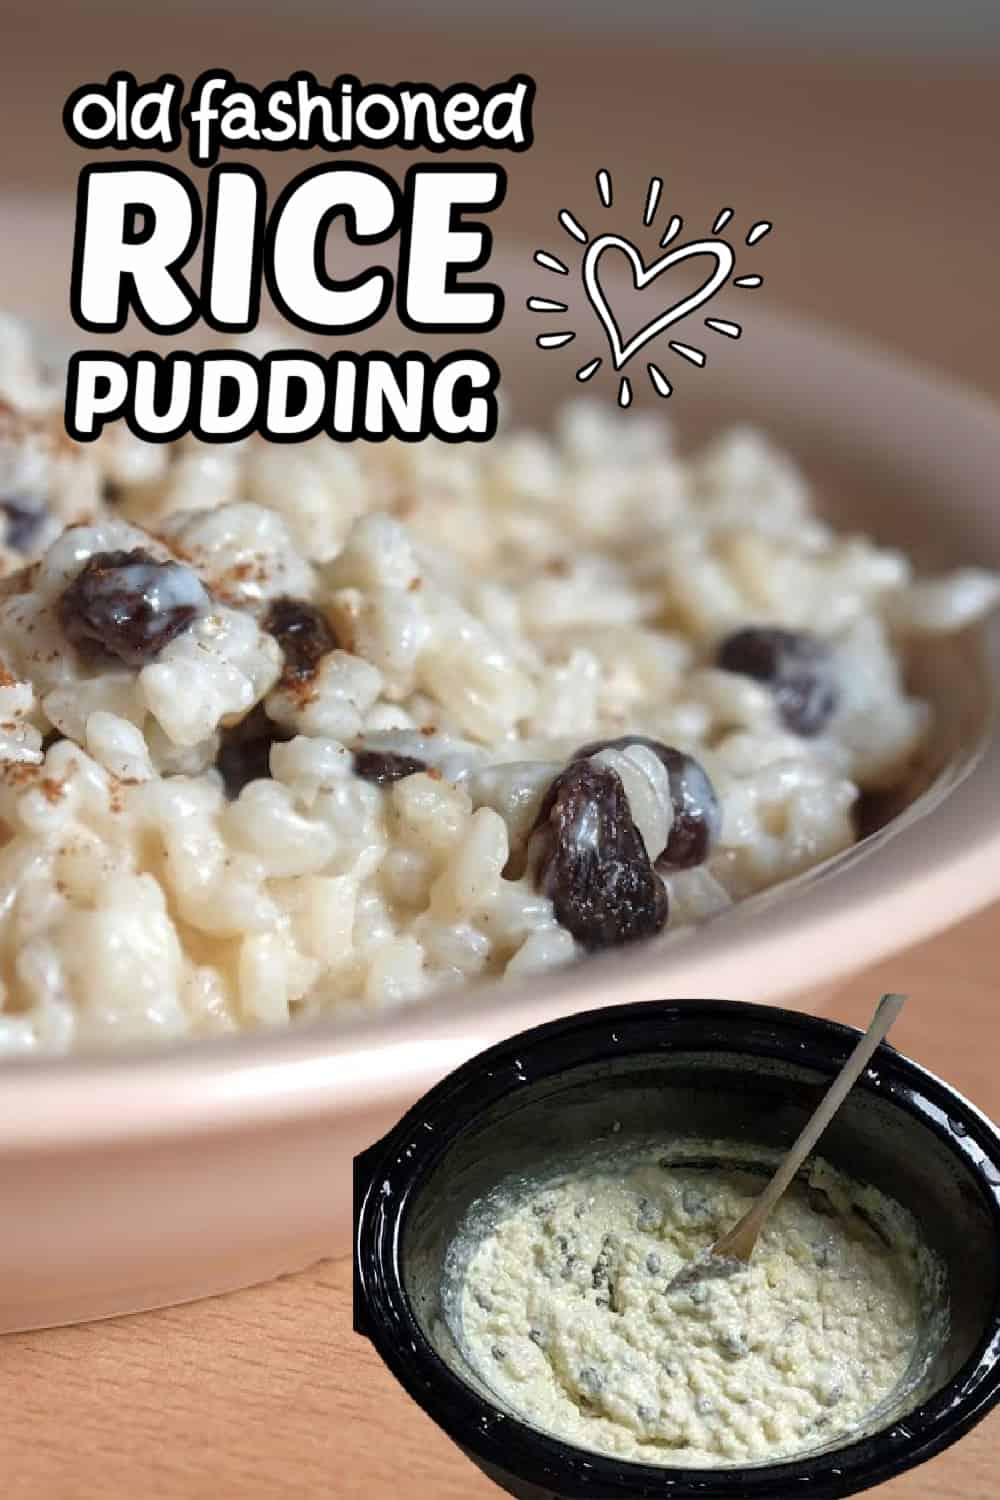 bowl of rice pudding with raisins and smaller pic of slow cooker with rice pudding in it